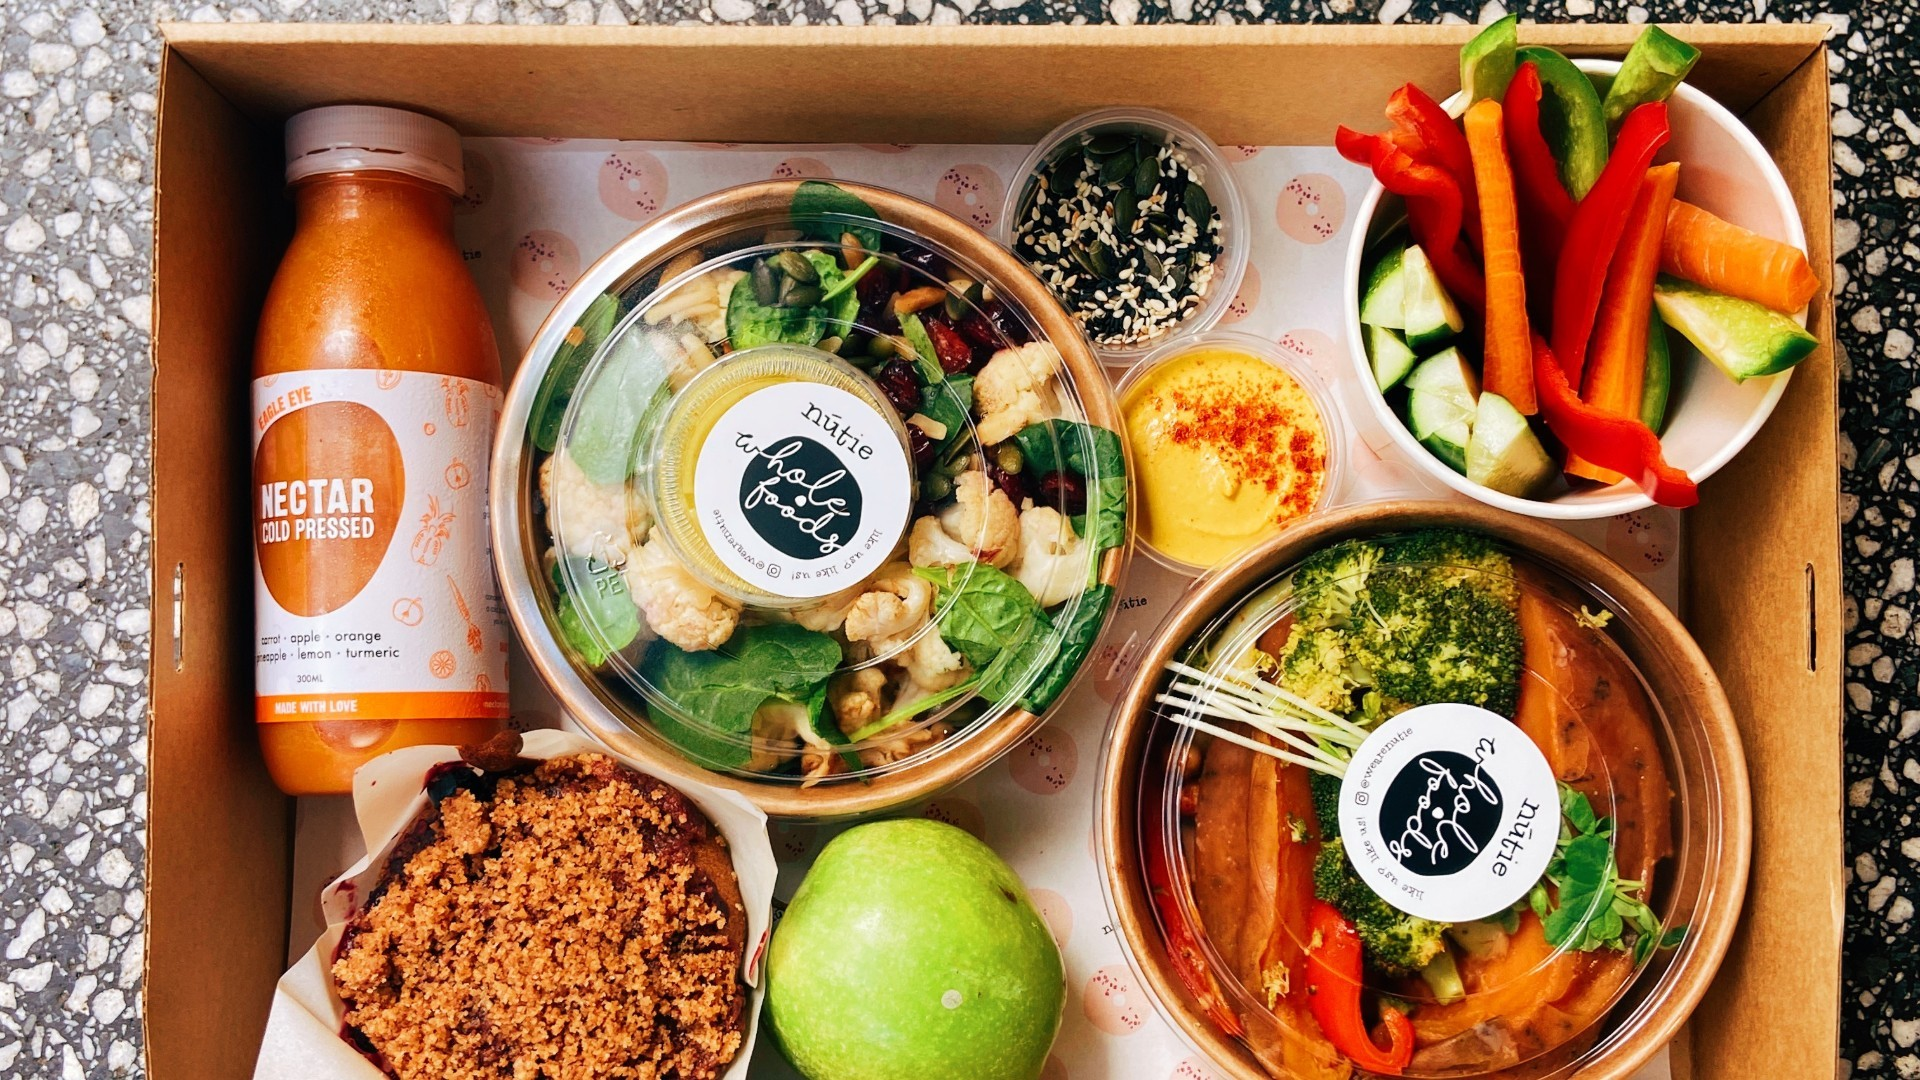 This local business is delivering vegan, gluten free meal boxes to your door